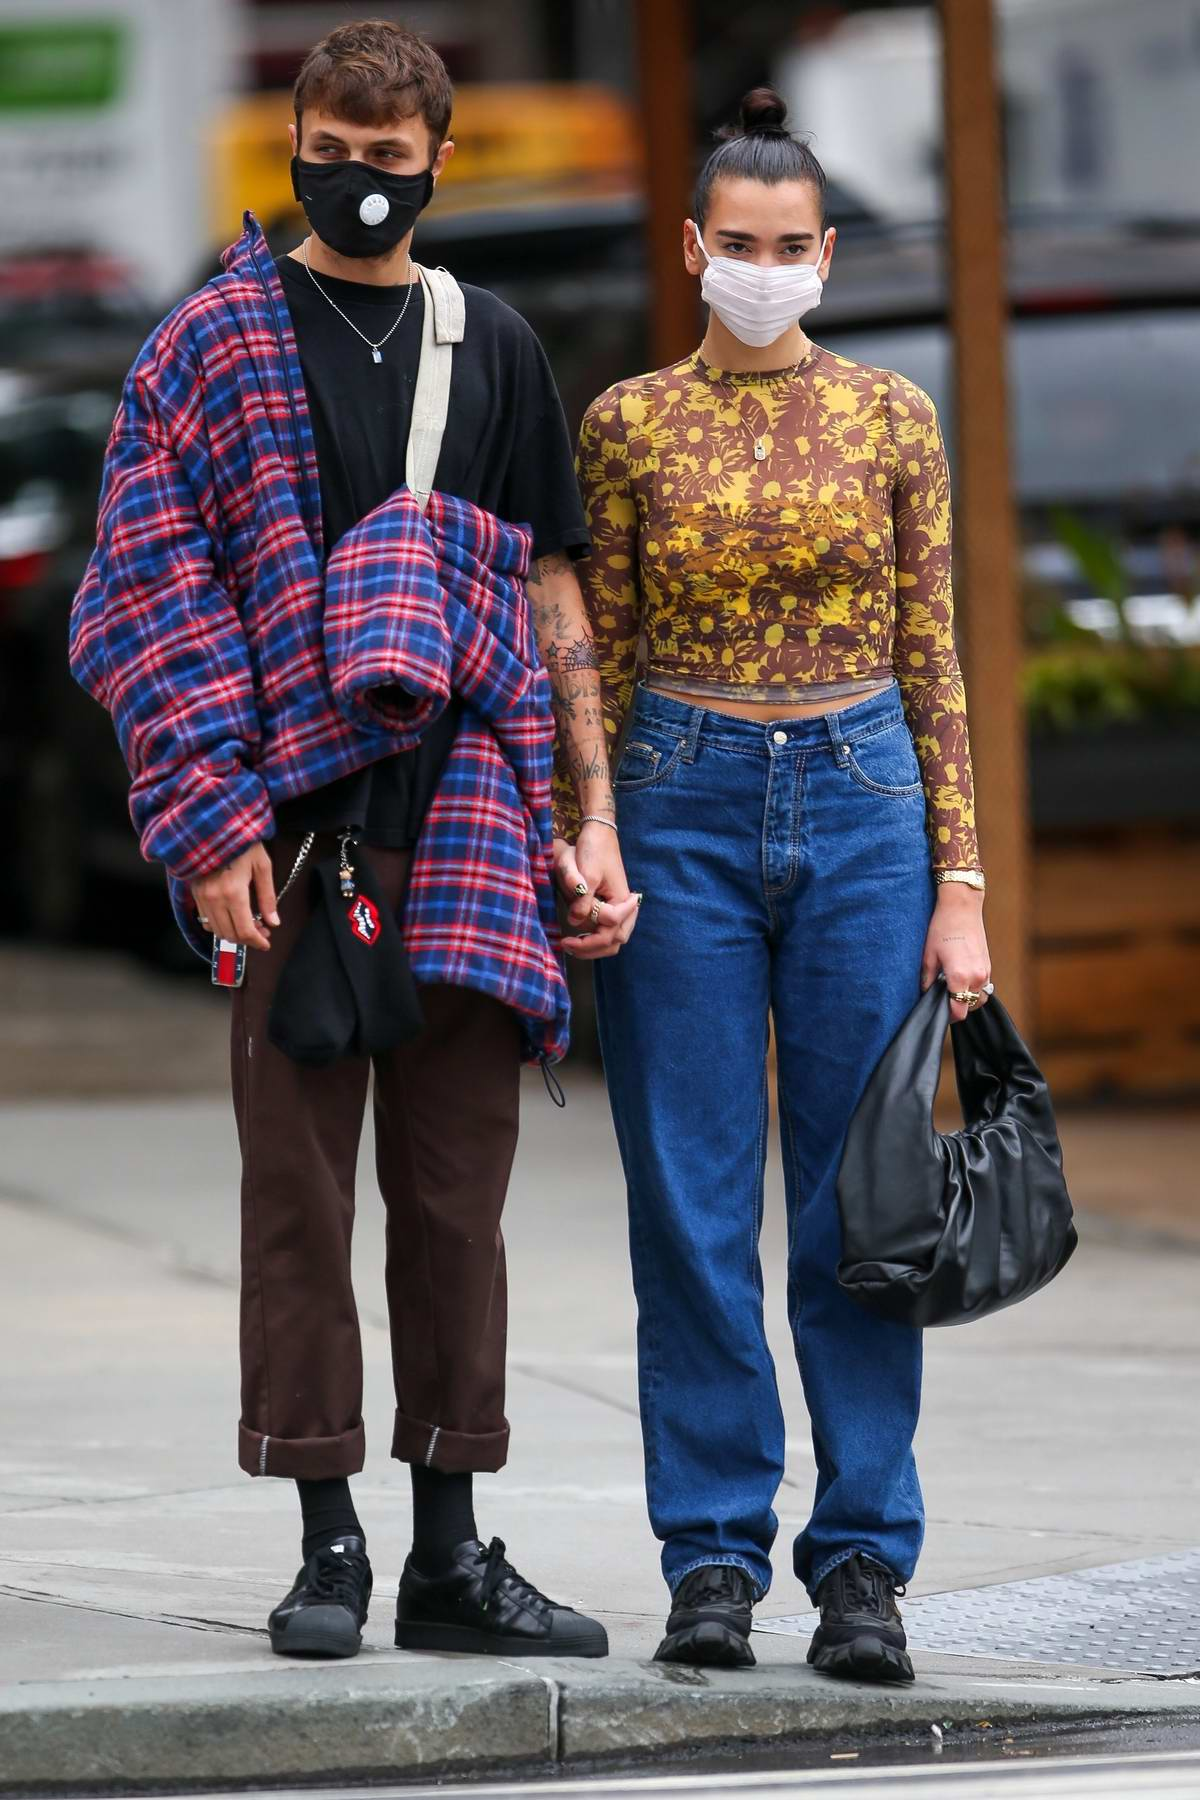 Dua Lipa wears a colorful crop top and denim while out on a stroll with Anwar Hadid in New York City